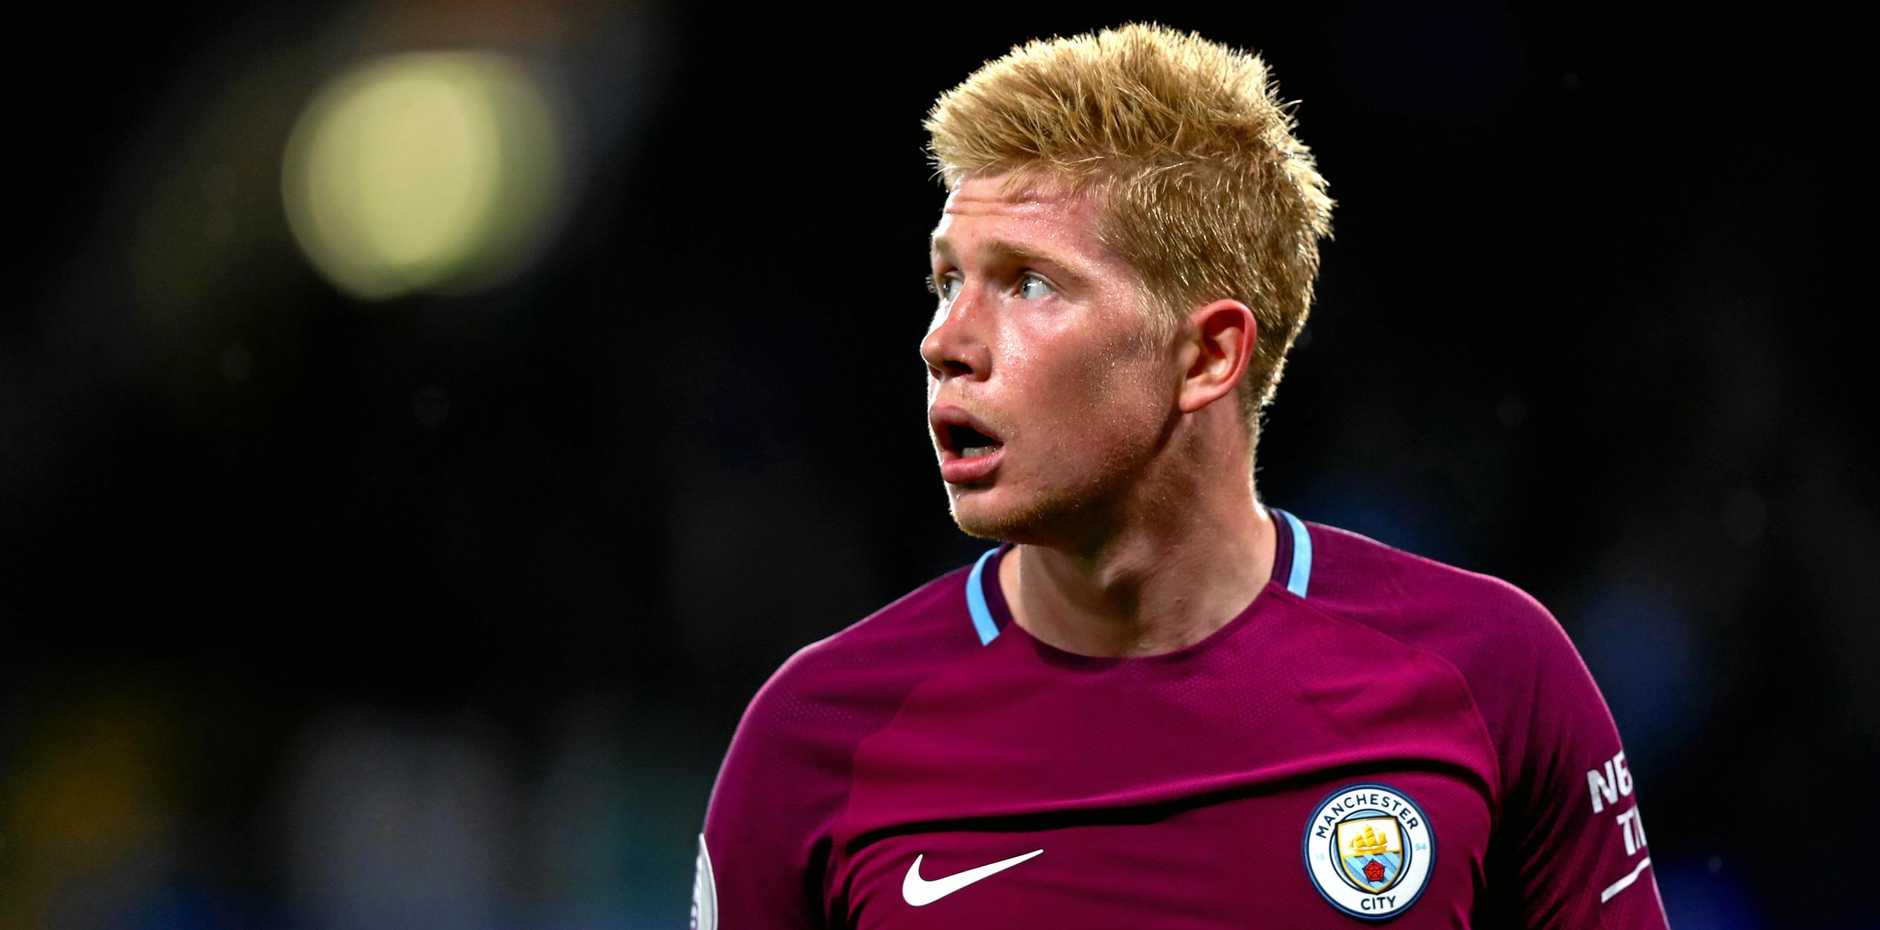 Kevin De Bruyne scored the winner for Manchester City in the 1-0 win at Chelsea.